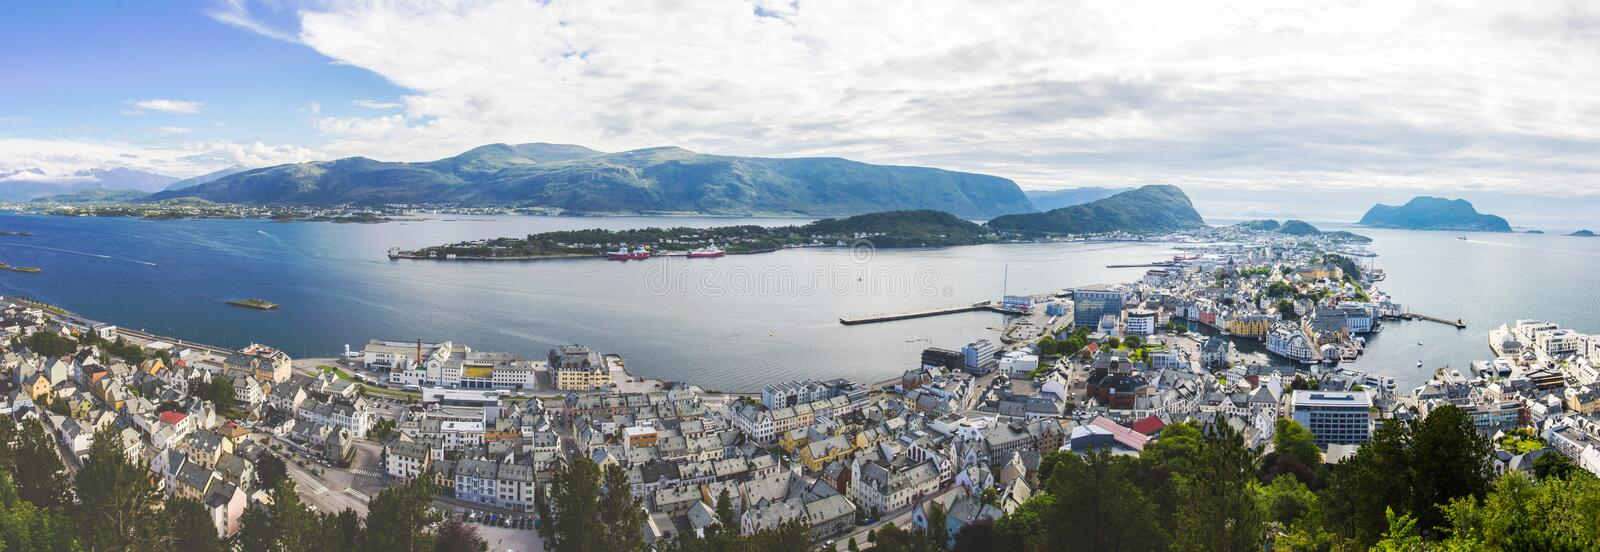 Aksla viewpoint in Alesund city in Norway. Aksla viewpoint in Alesund South Norway royalty free stock photos